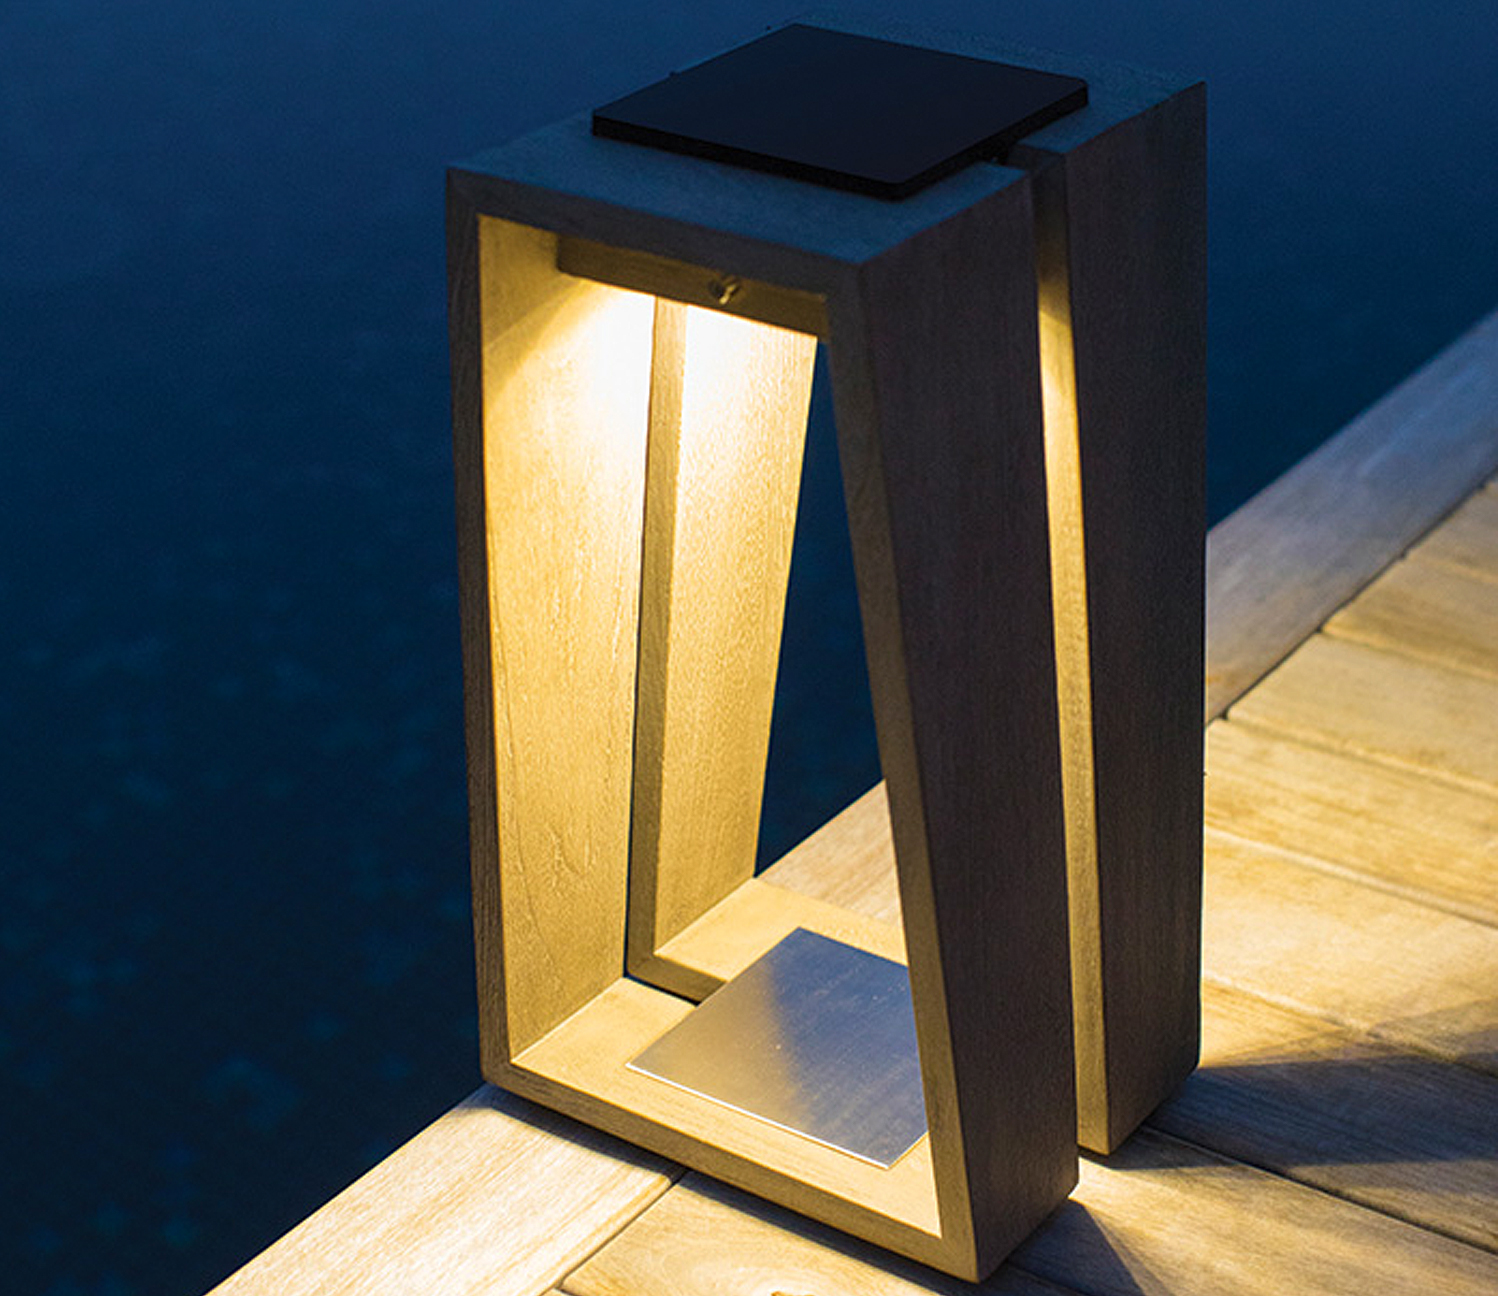 Introducing the Skaal lantern from Les Jardins Solar Lighting.